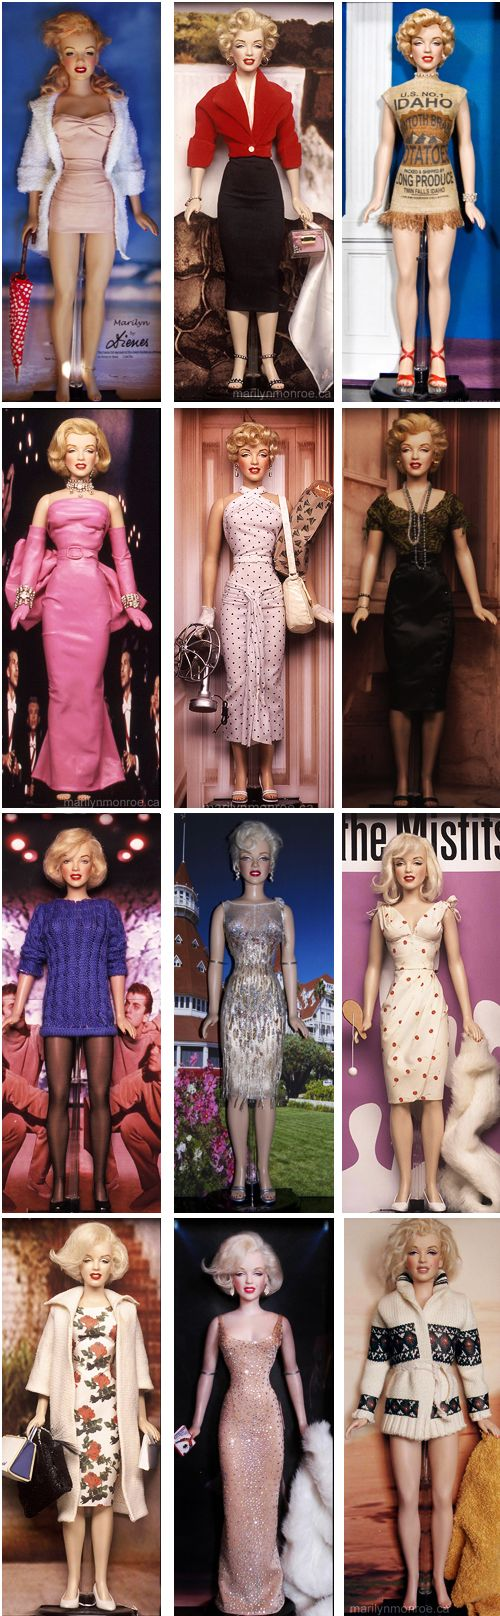 """Kim Goodwin's One-of-a-Kind custom Marilyn Monroe dolls. Using the Franklin Mint doll as a vinyl """"form,"""" Kim strips it down to basics and starts fresh. He skillfully and meticulously adds hair, make-up, clothing and accessories specific to Marilyn's character and costume in each film. He doesn't sew, but brilliantly finds ways to approximate Marilyn's original movie costumes. These dolls are not for sale."""